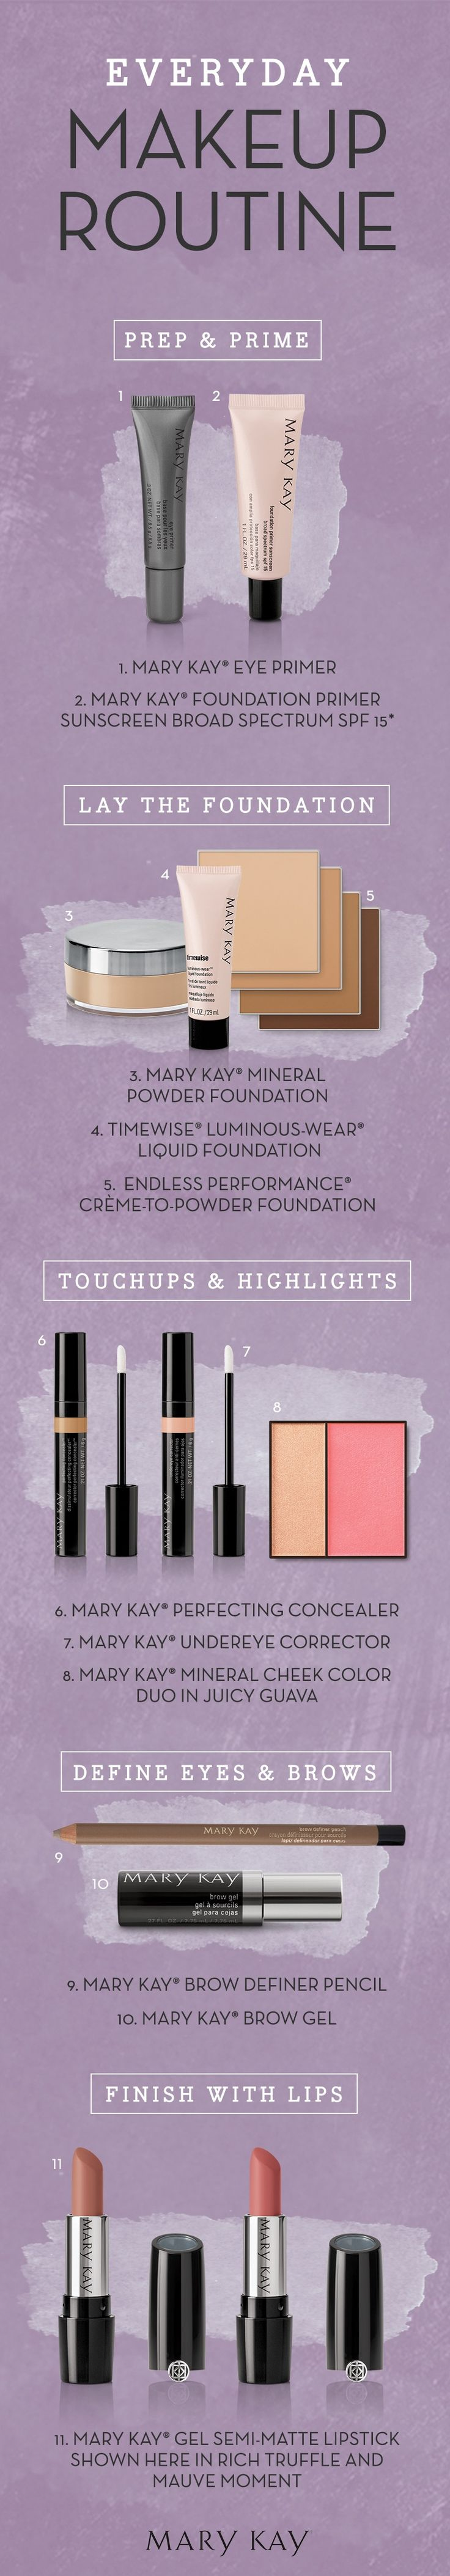 Our Goto Mary Kay Makeup Routine, Everyday! Discover Some Everyday Must